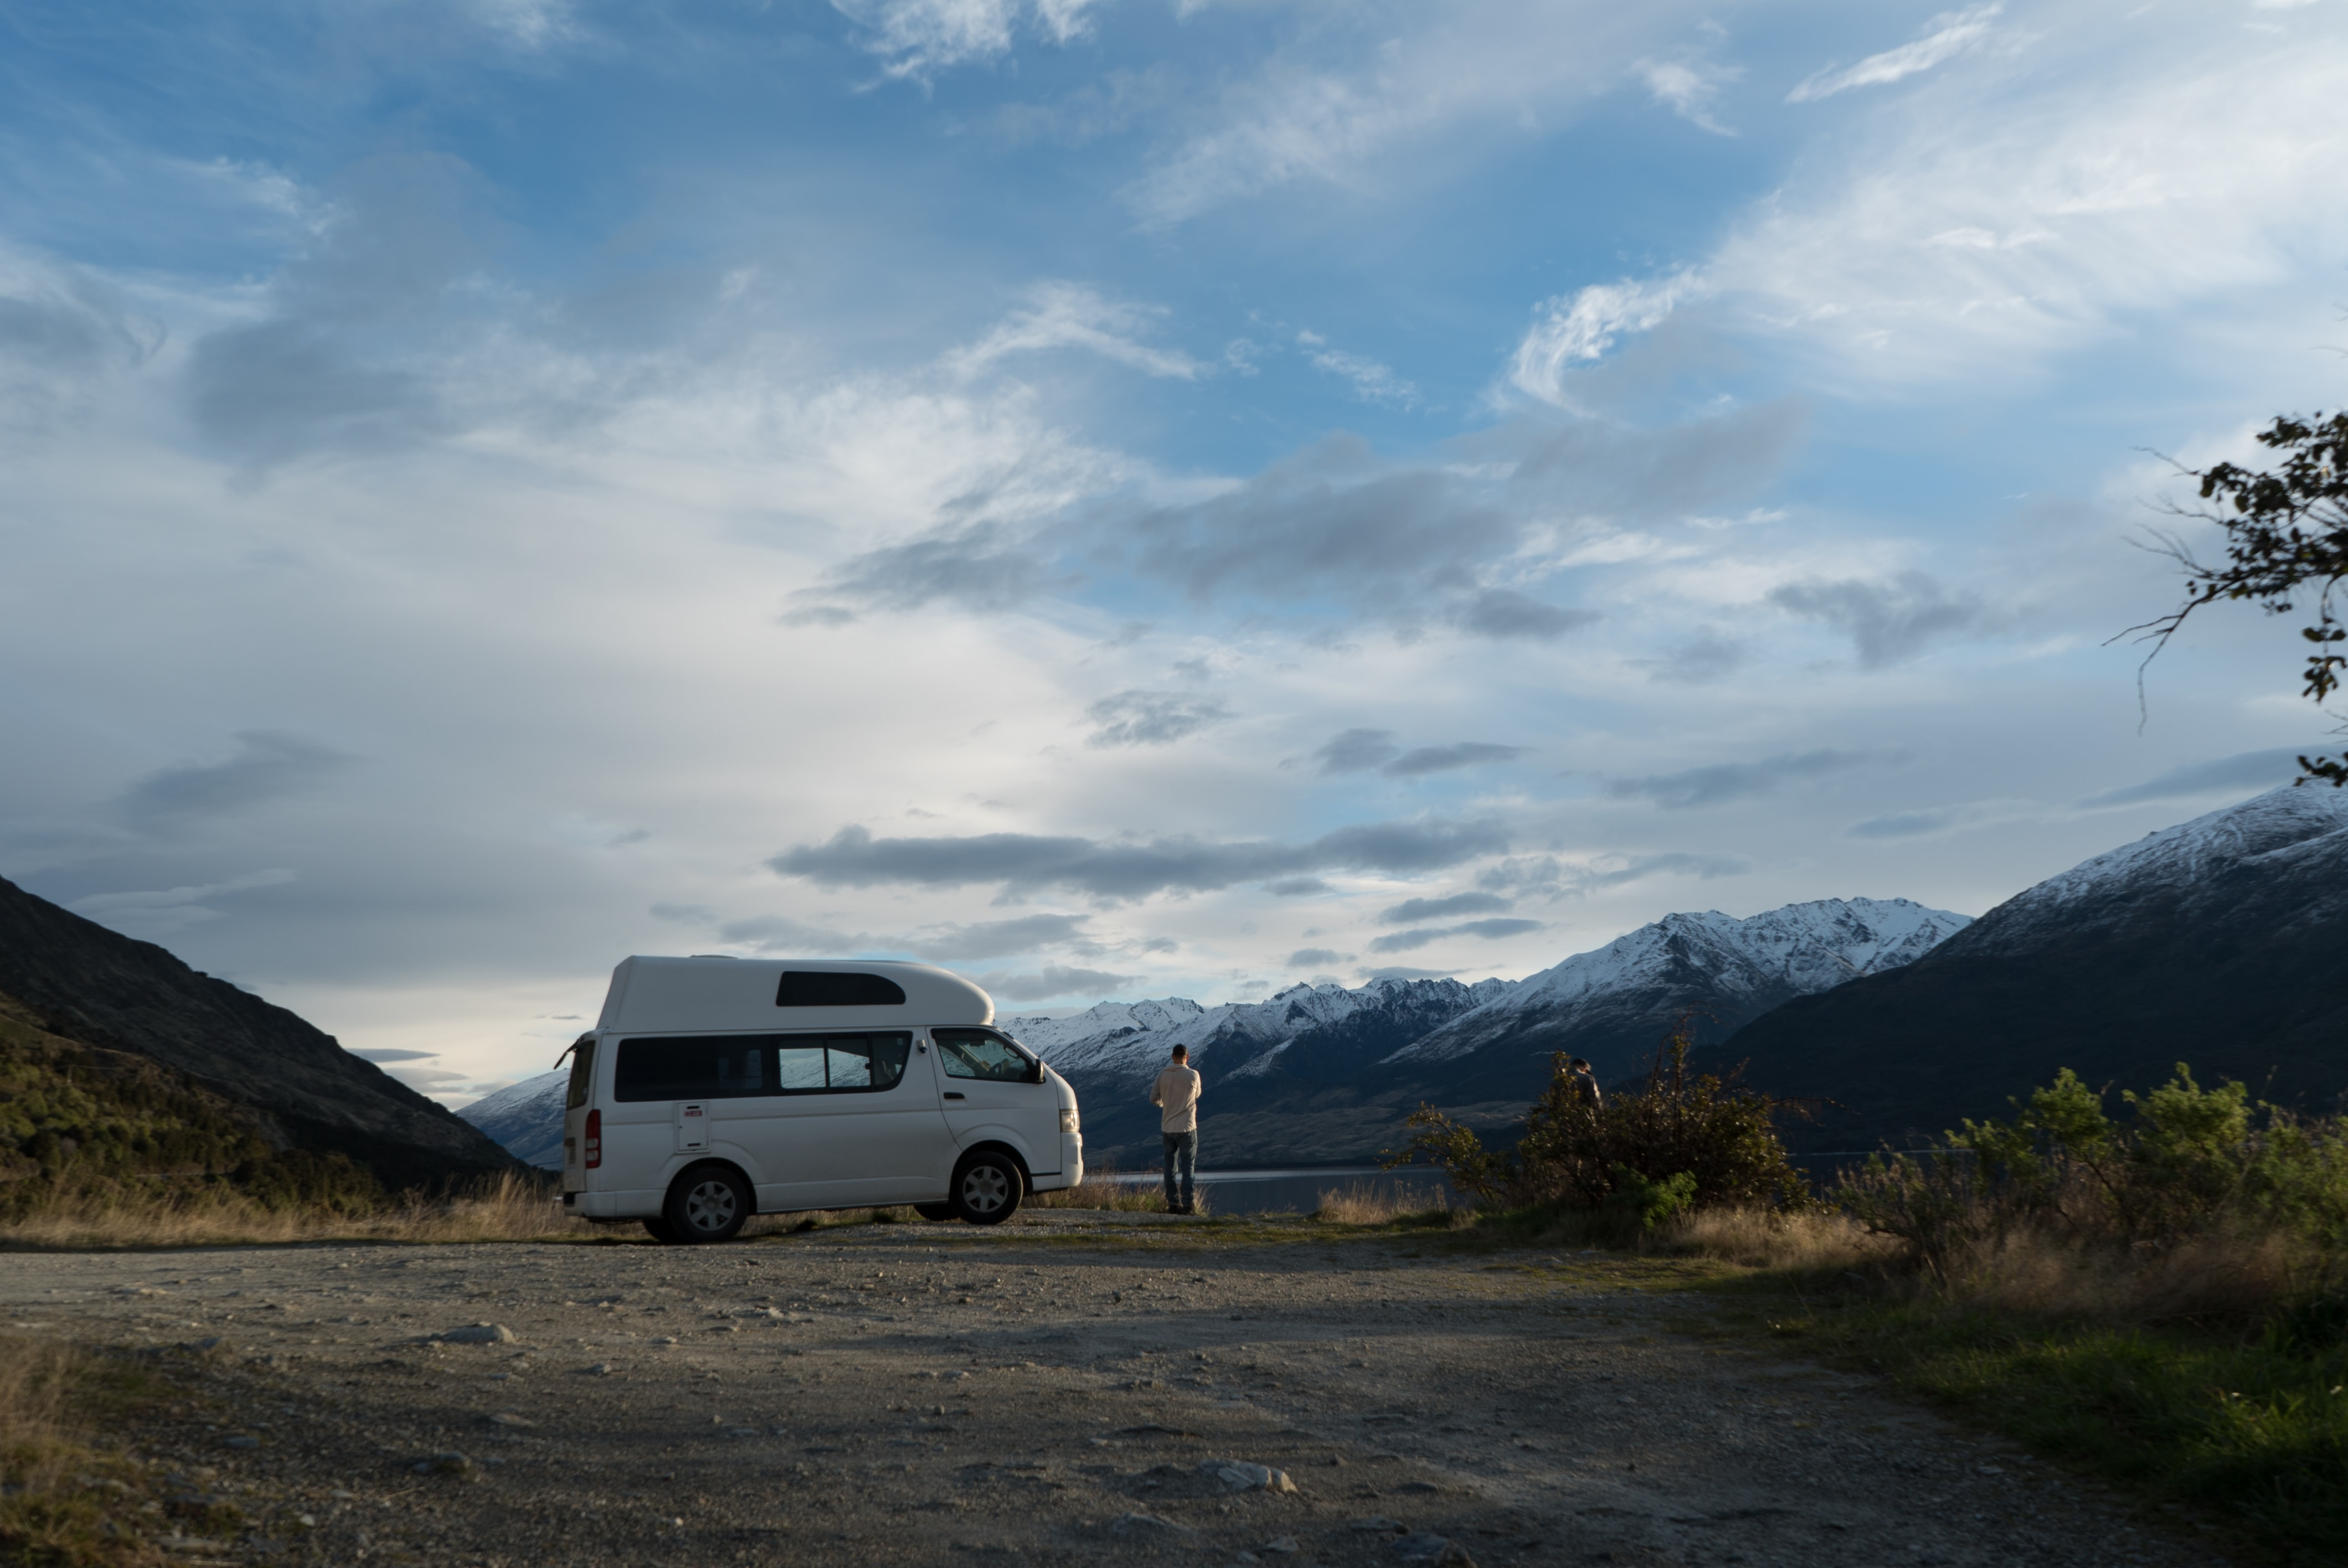 person standing in front of a white van